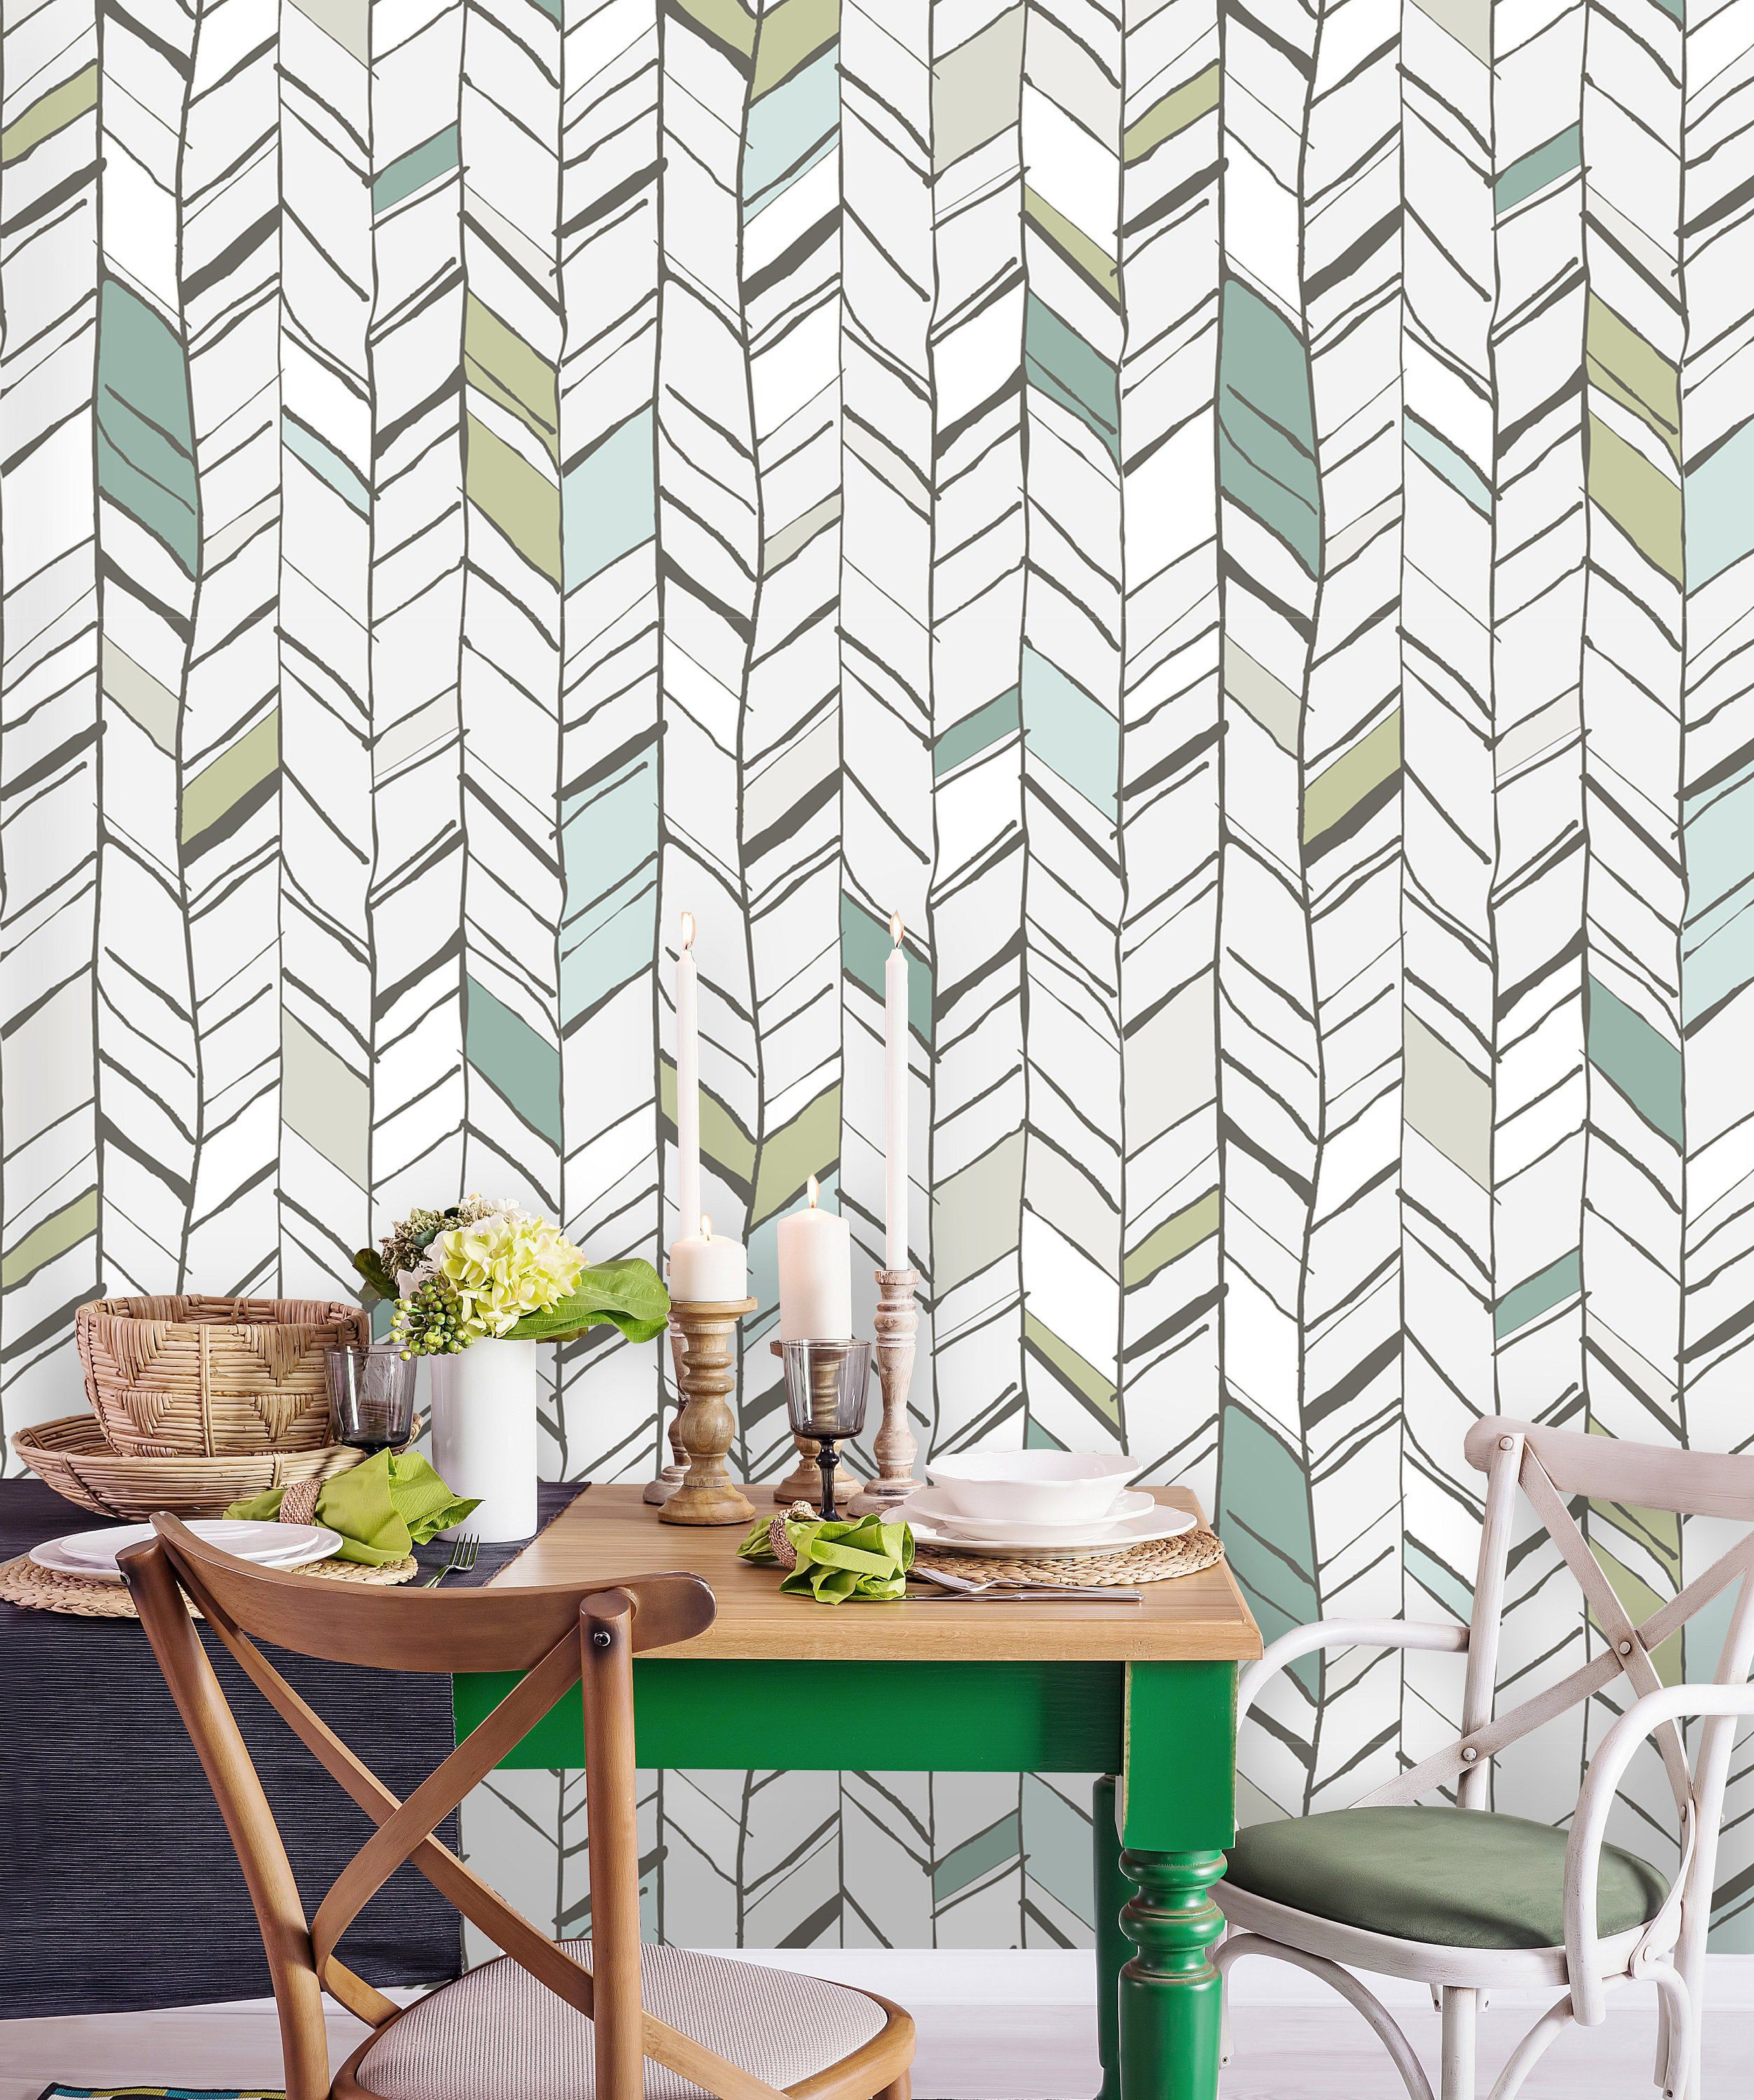 Removable Wallpaper Peel And Stick Geometric Mural Self Etsy Removable Wallpaper Vintage Wallpaper Wallpaper